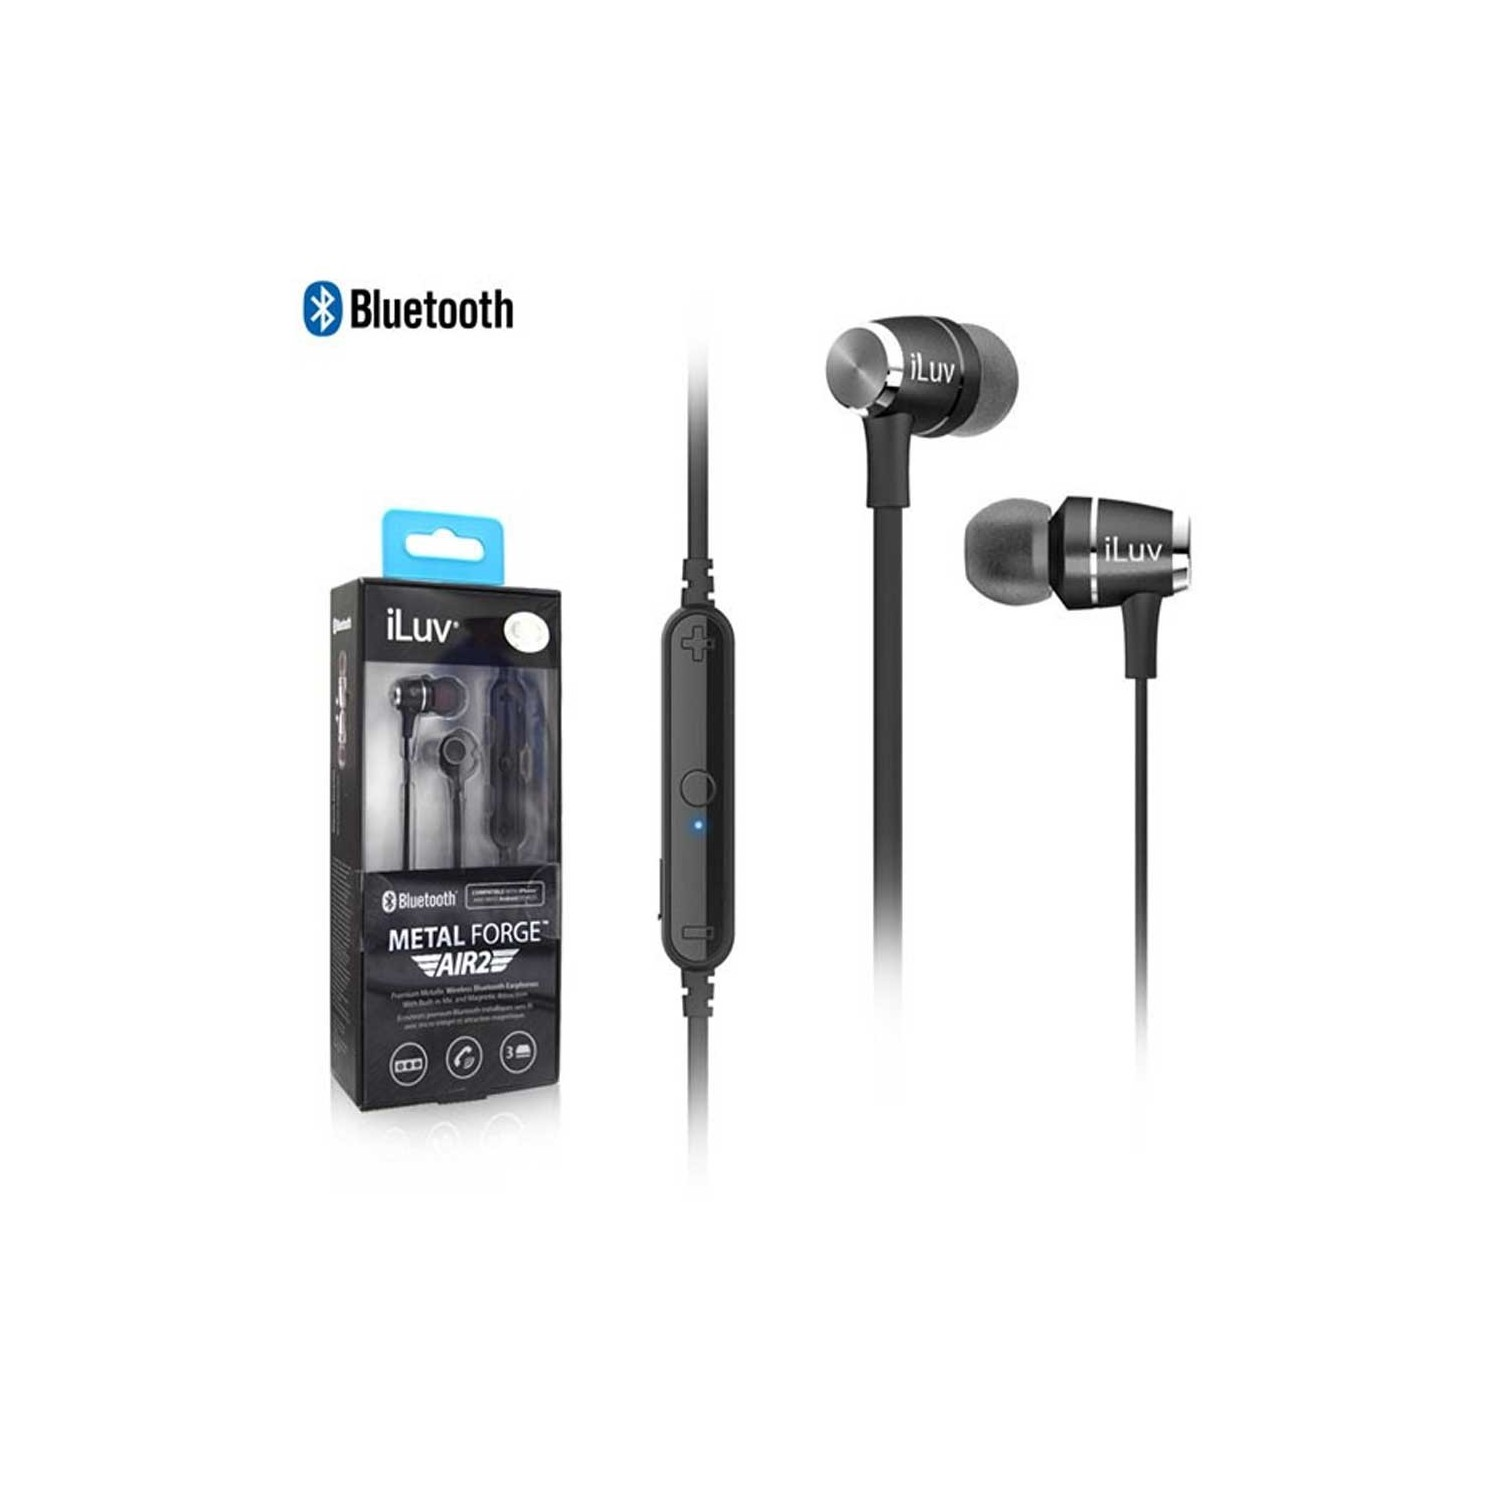 Manos Libres ILUV Bluetooth Universal Stereo Metal Forge Air2 Negro